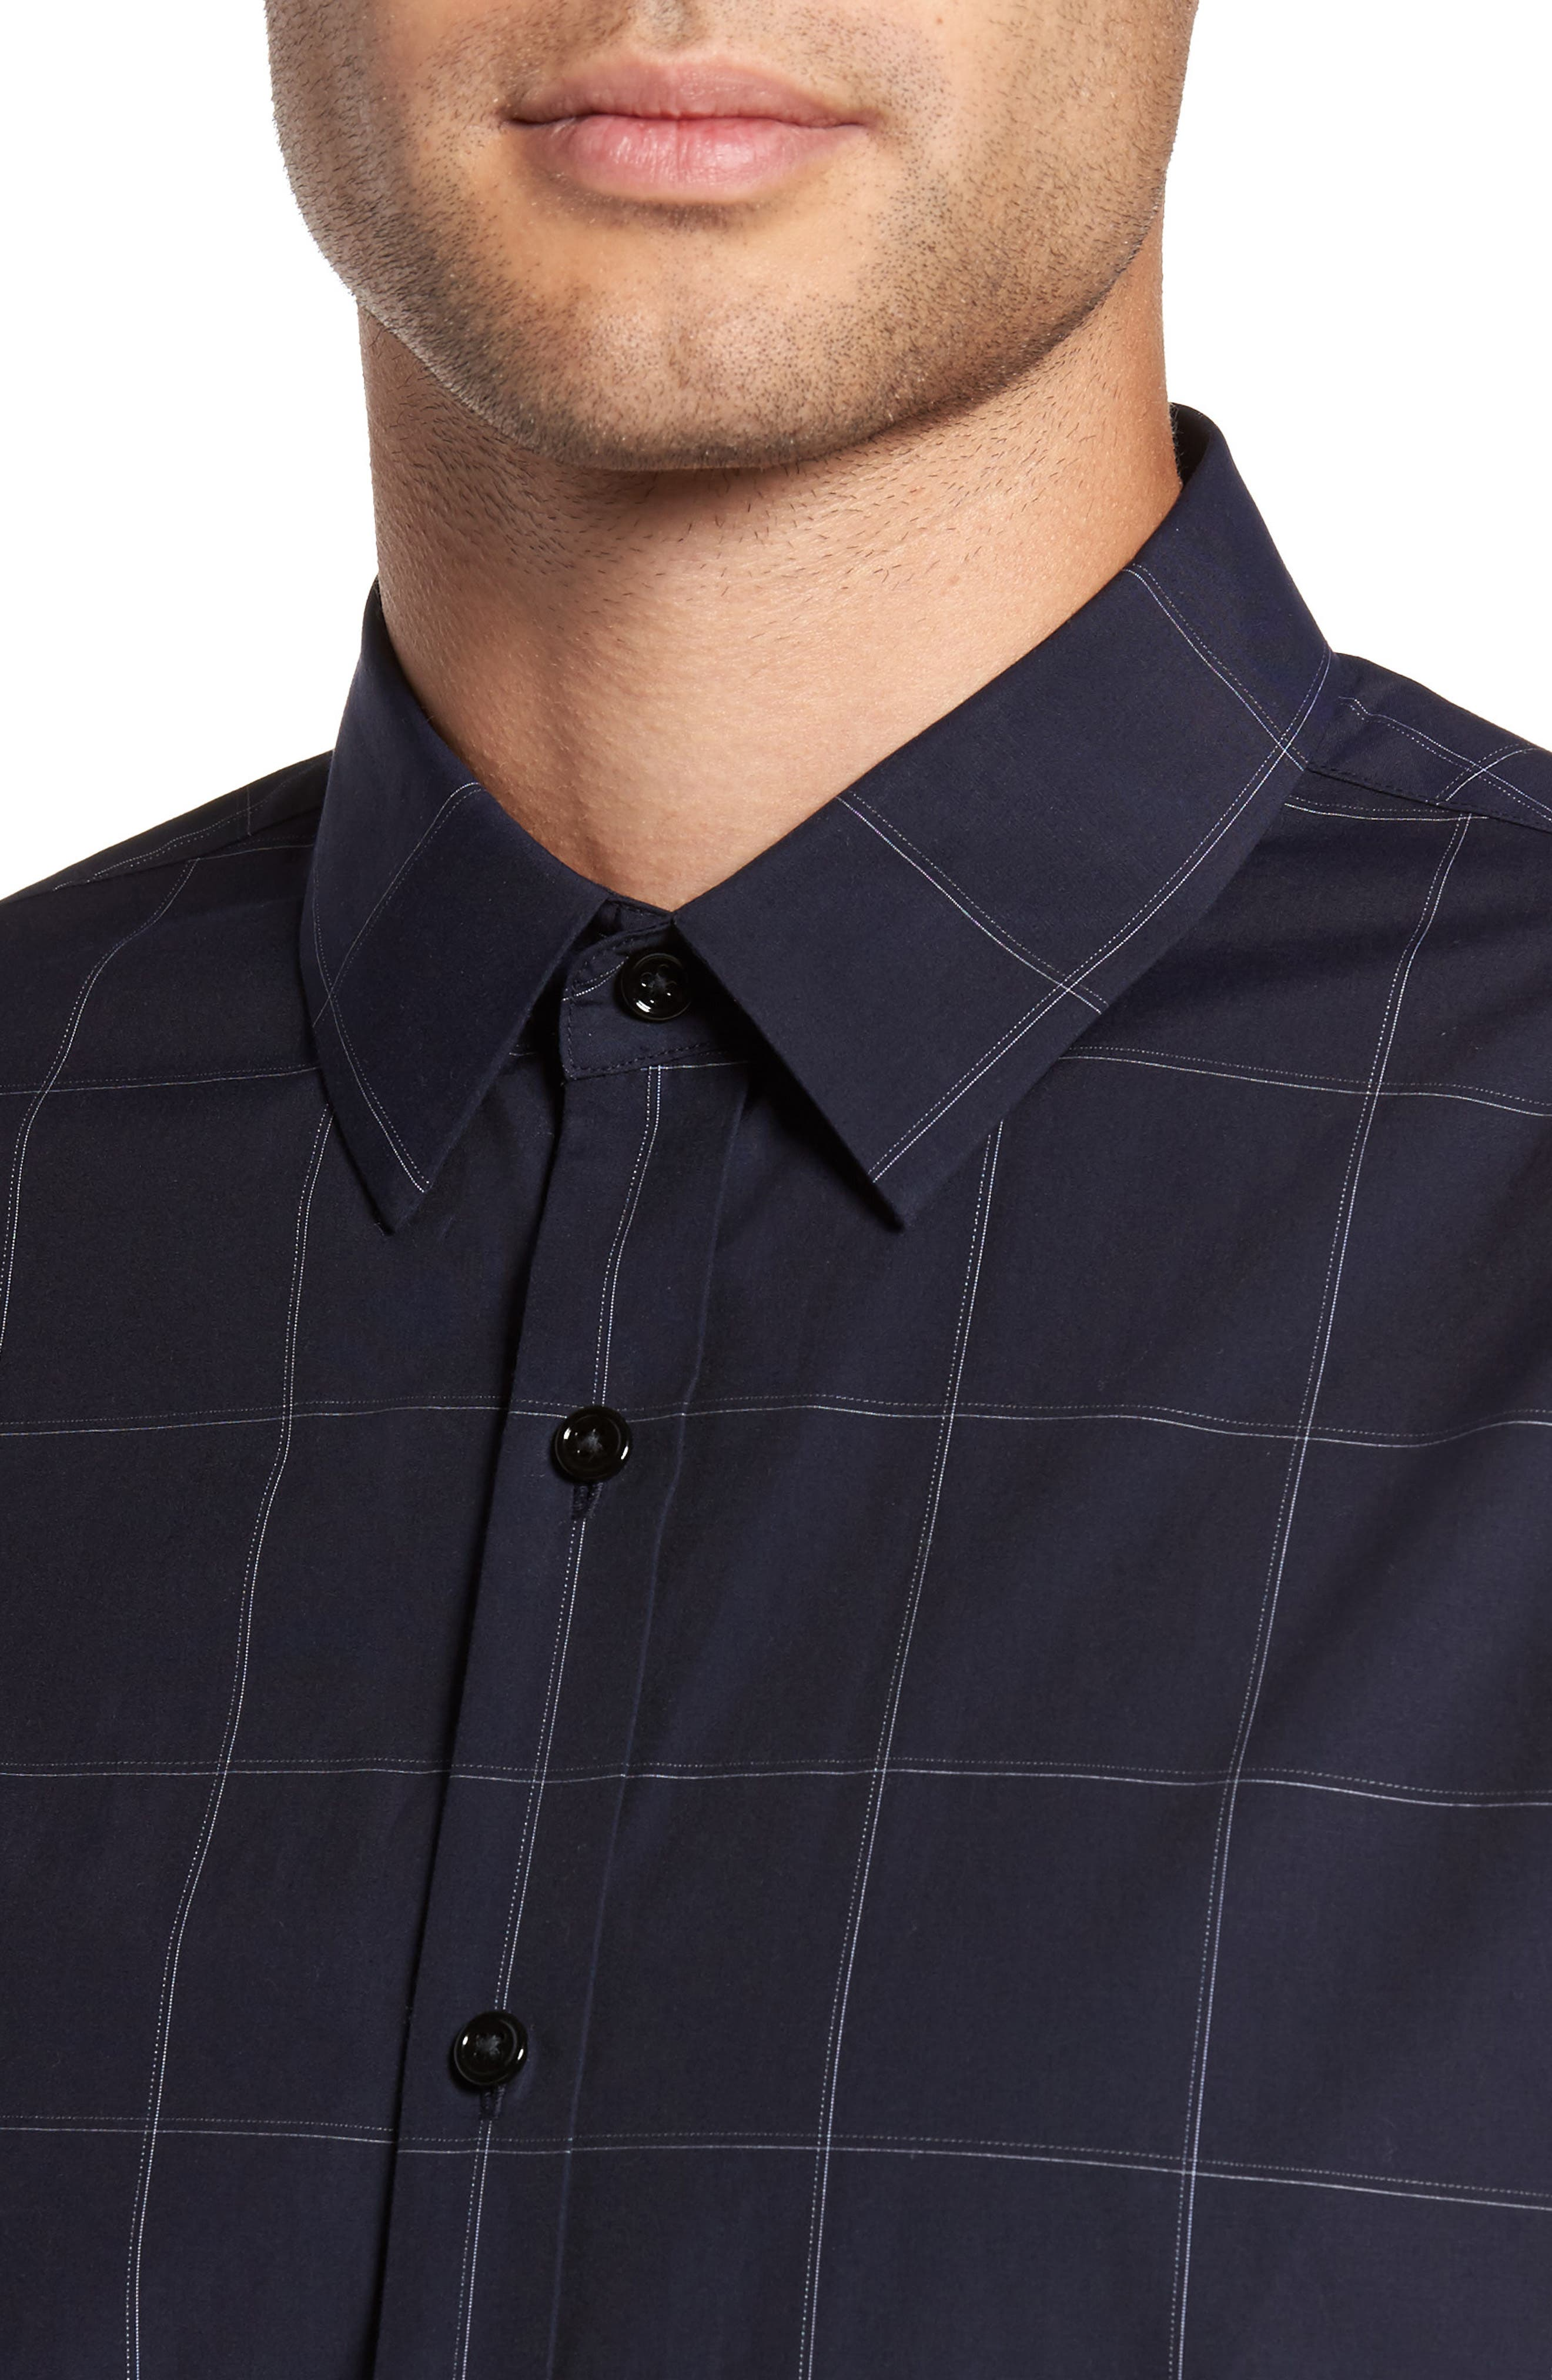 Grid Woven Sport Shirt,                             Alternate thumbnail 4, color,                             400